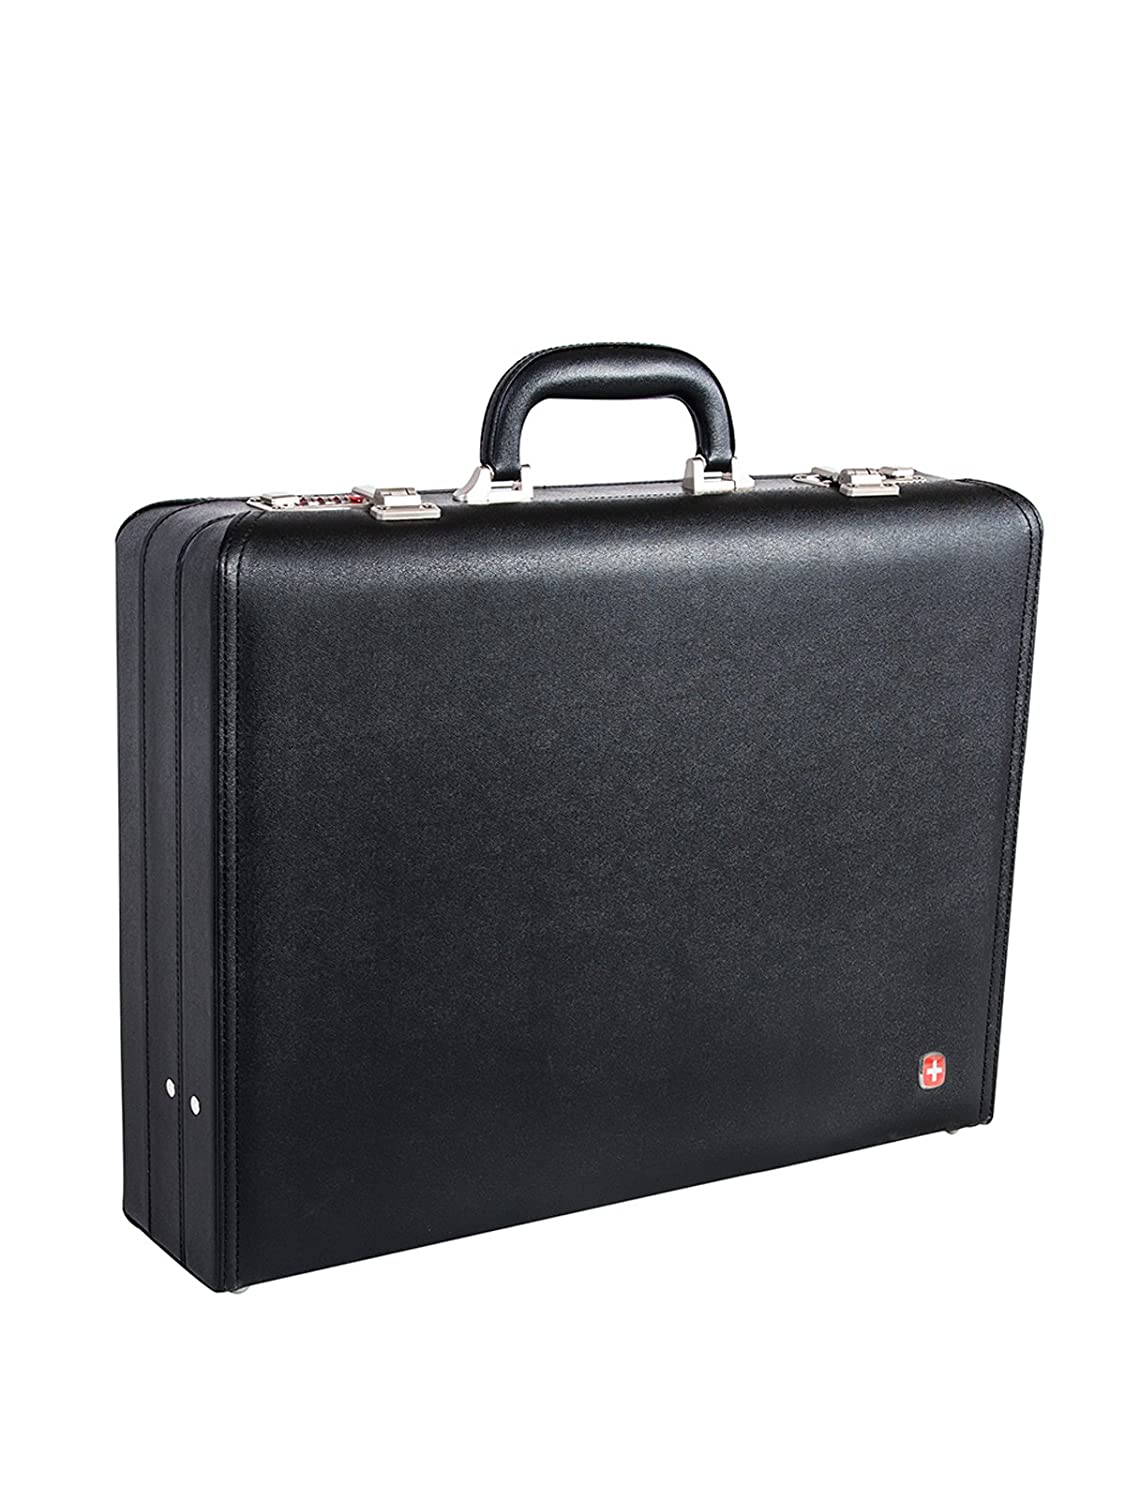 Swiss Gear 17.3-Inch Faux Leather Attache Case, Black, International Carry-on Holiday Luggage SWA0996009